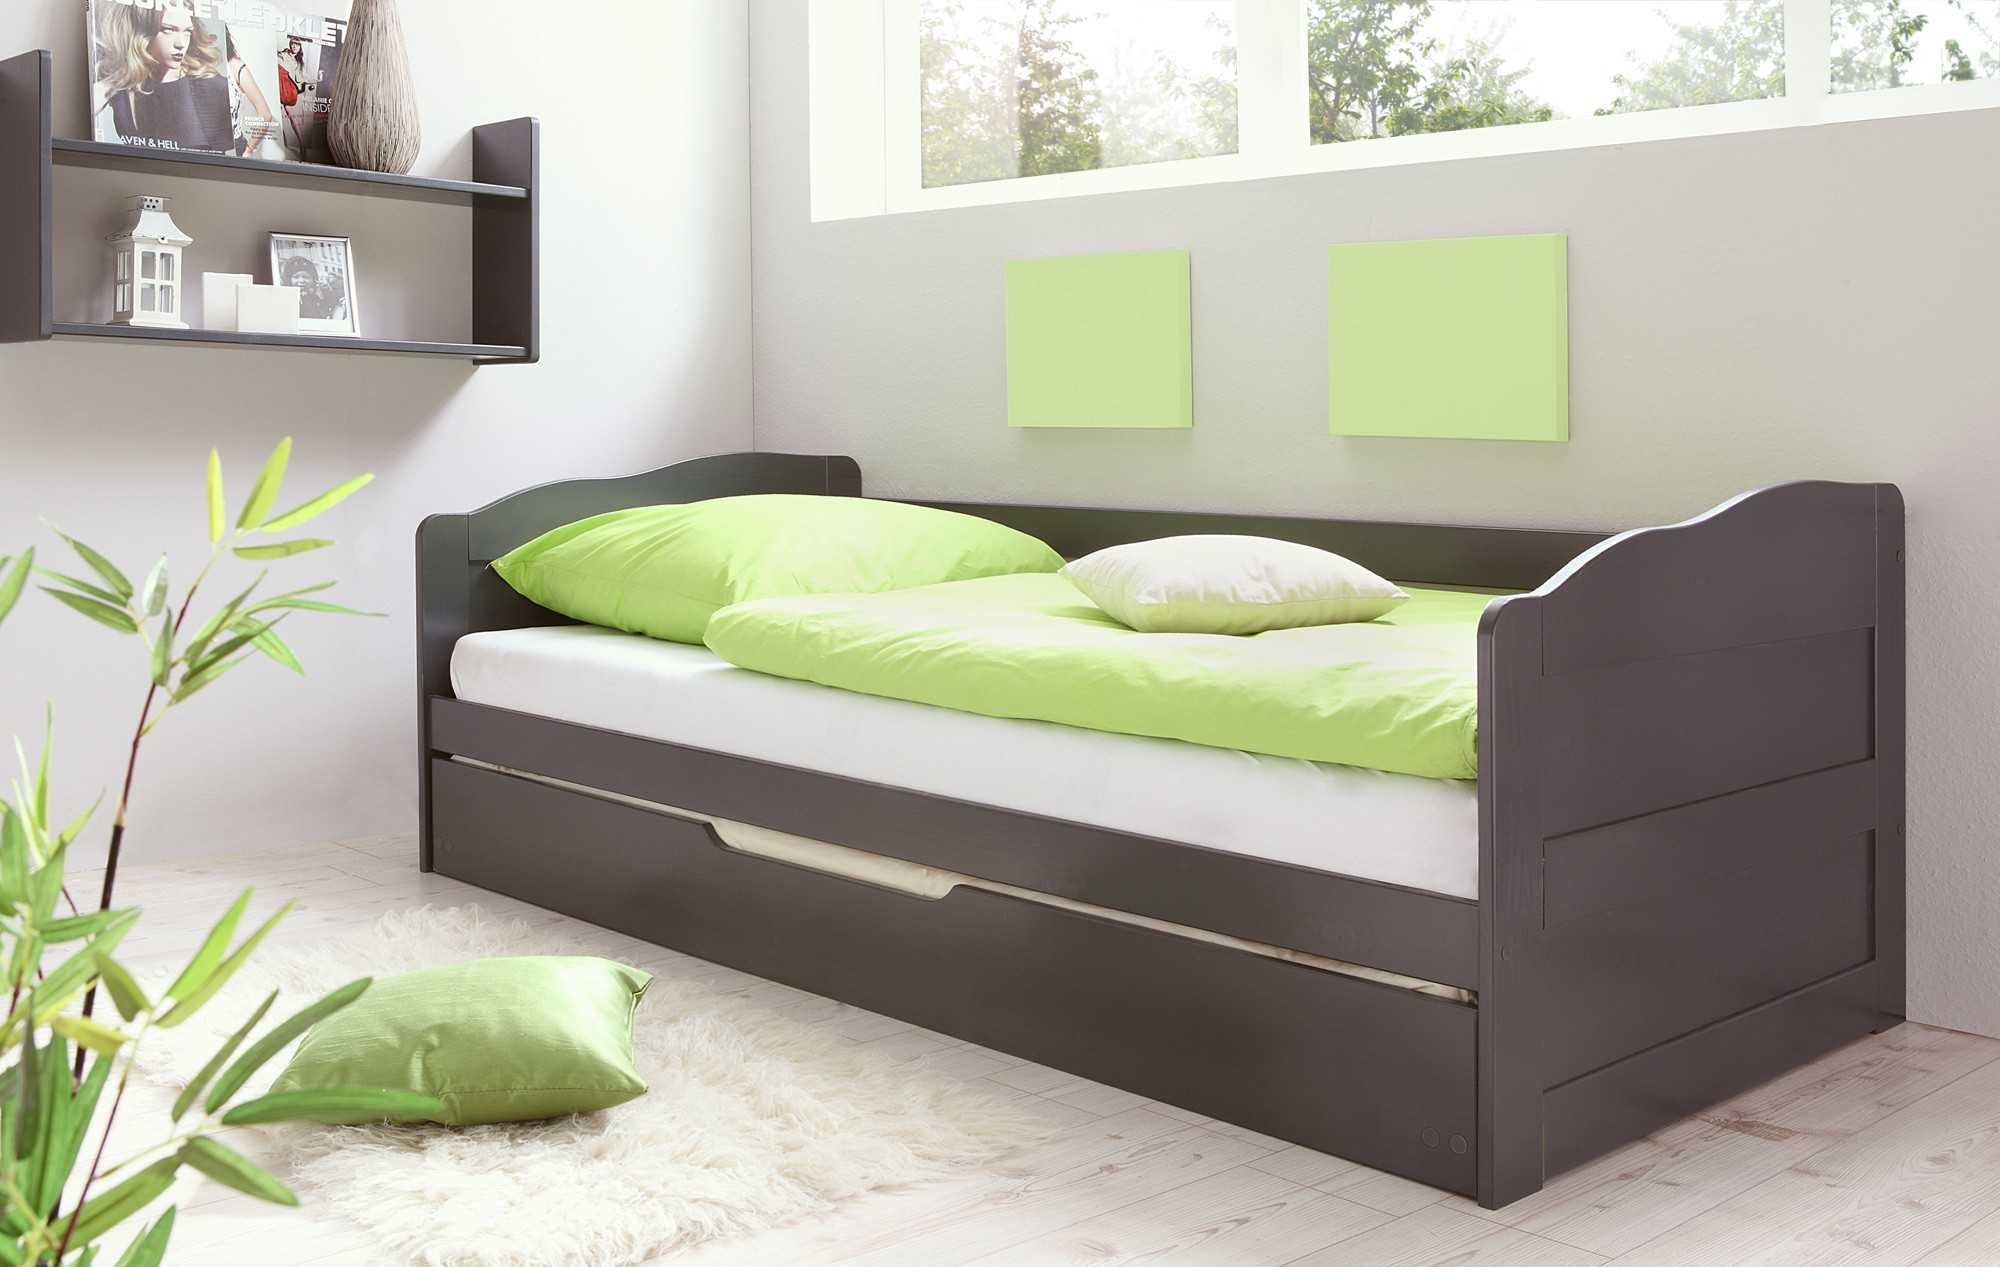 sofabett mit auszug kiefer anthrazit h c m bel. Black Bedroom Furniture Sets. Home Design Ideas